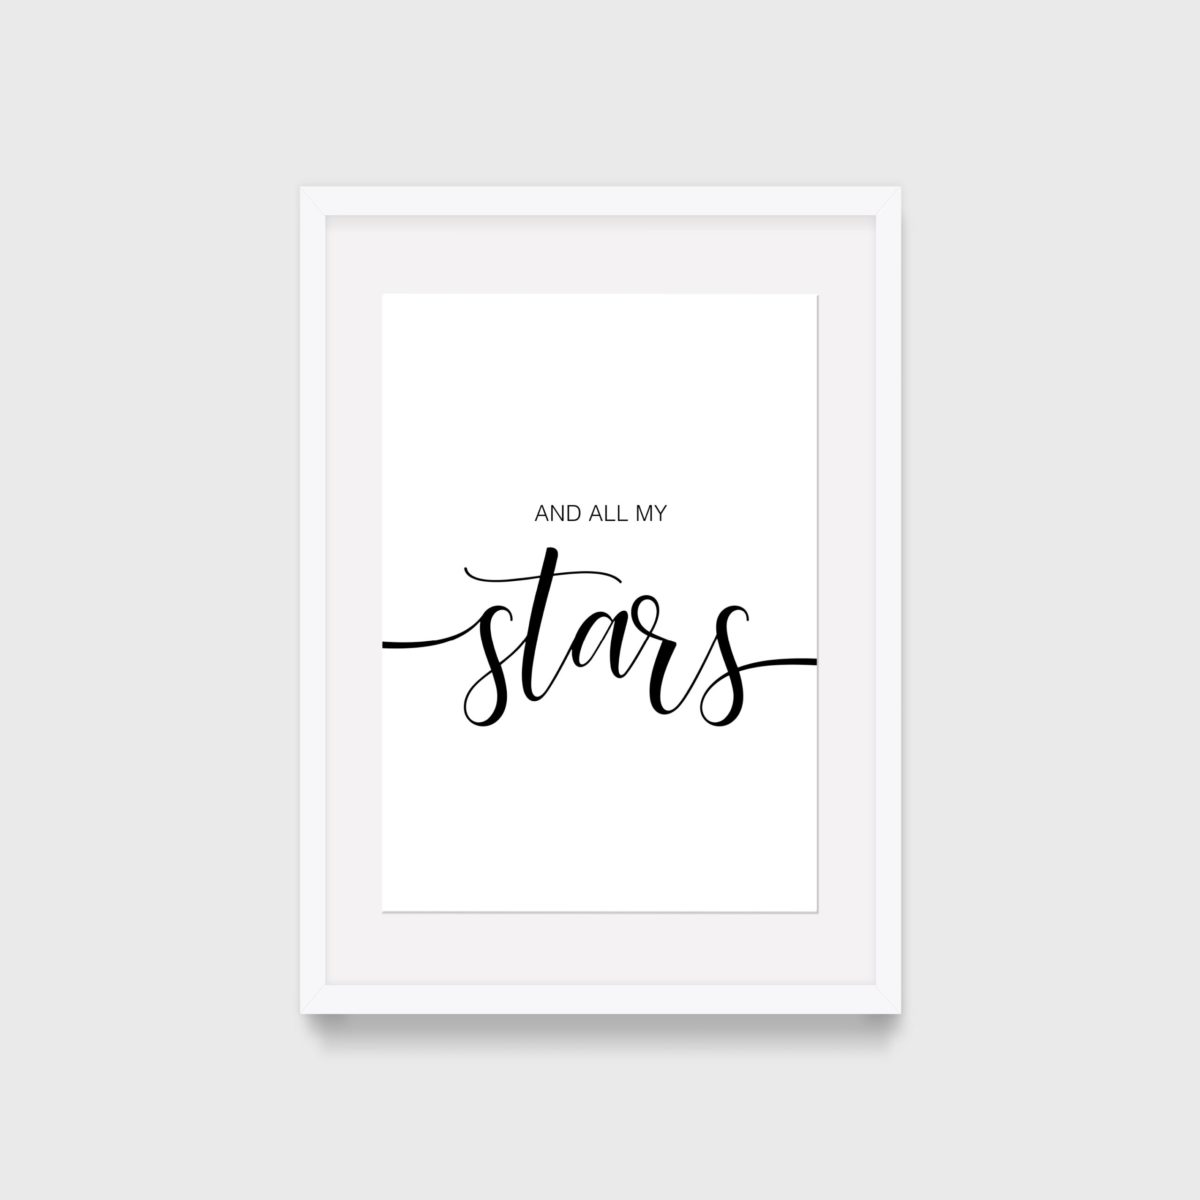 And all my stars – with frame